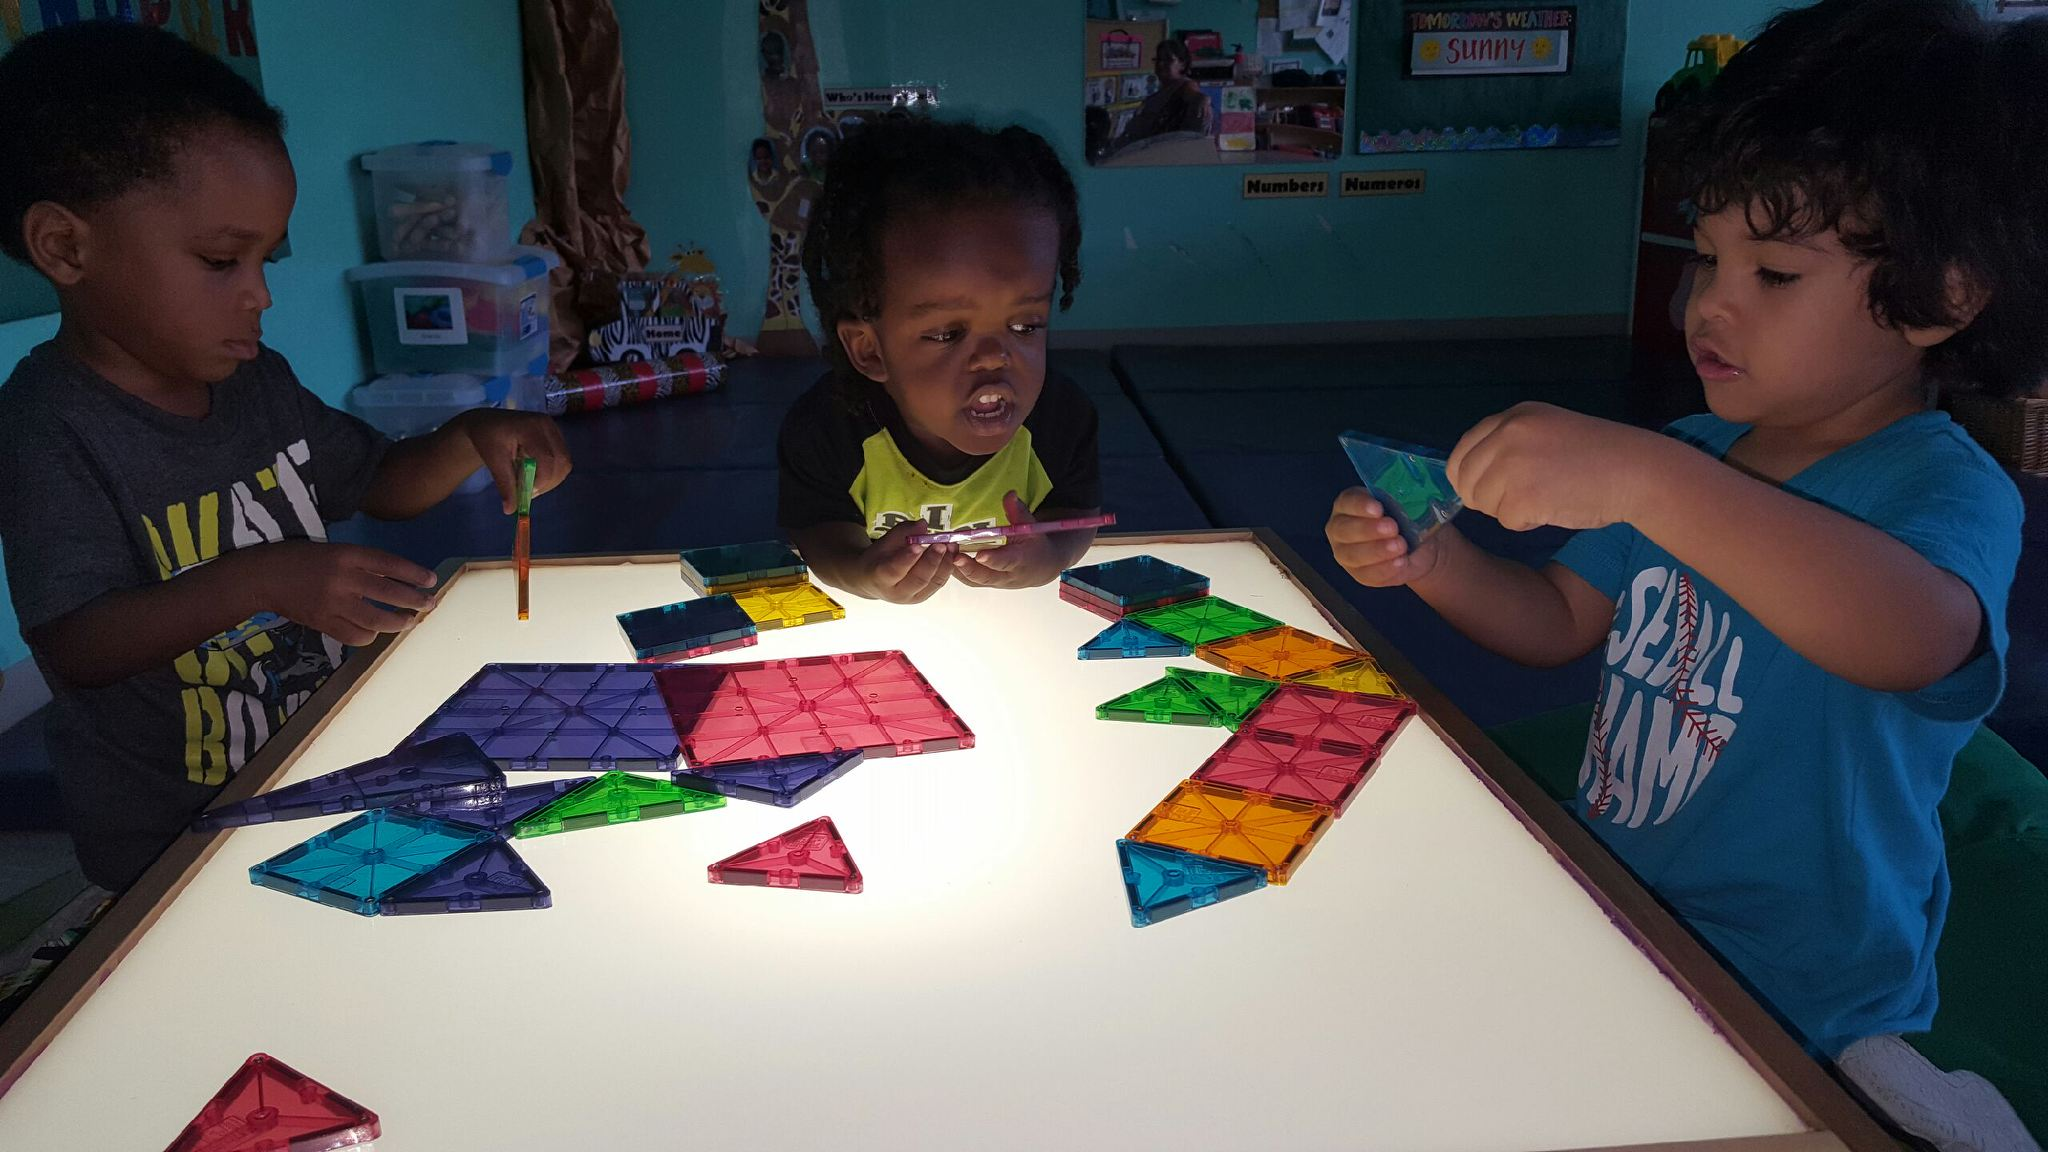 Children using a light table and shapes